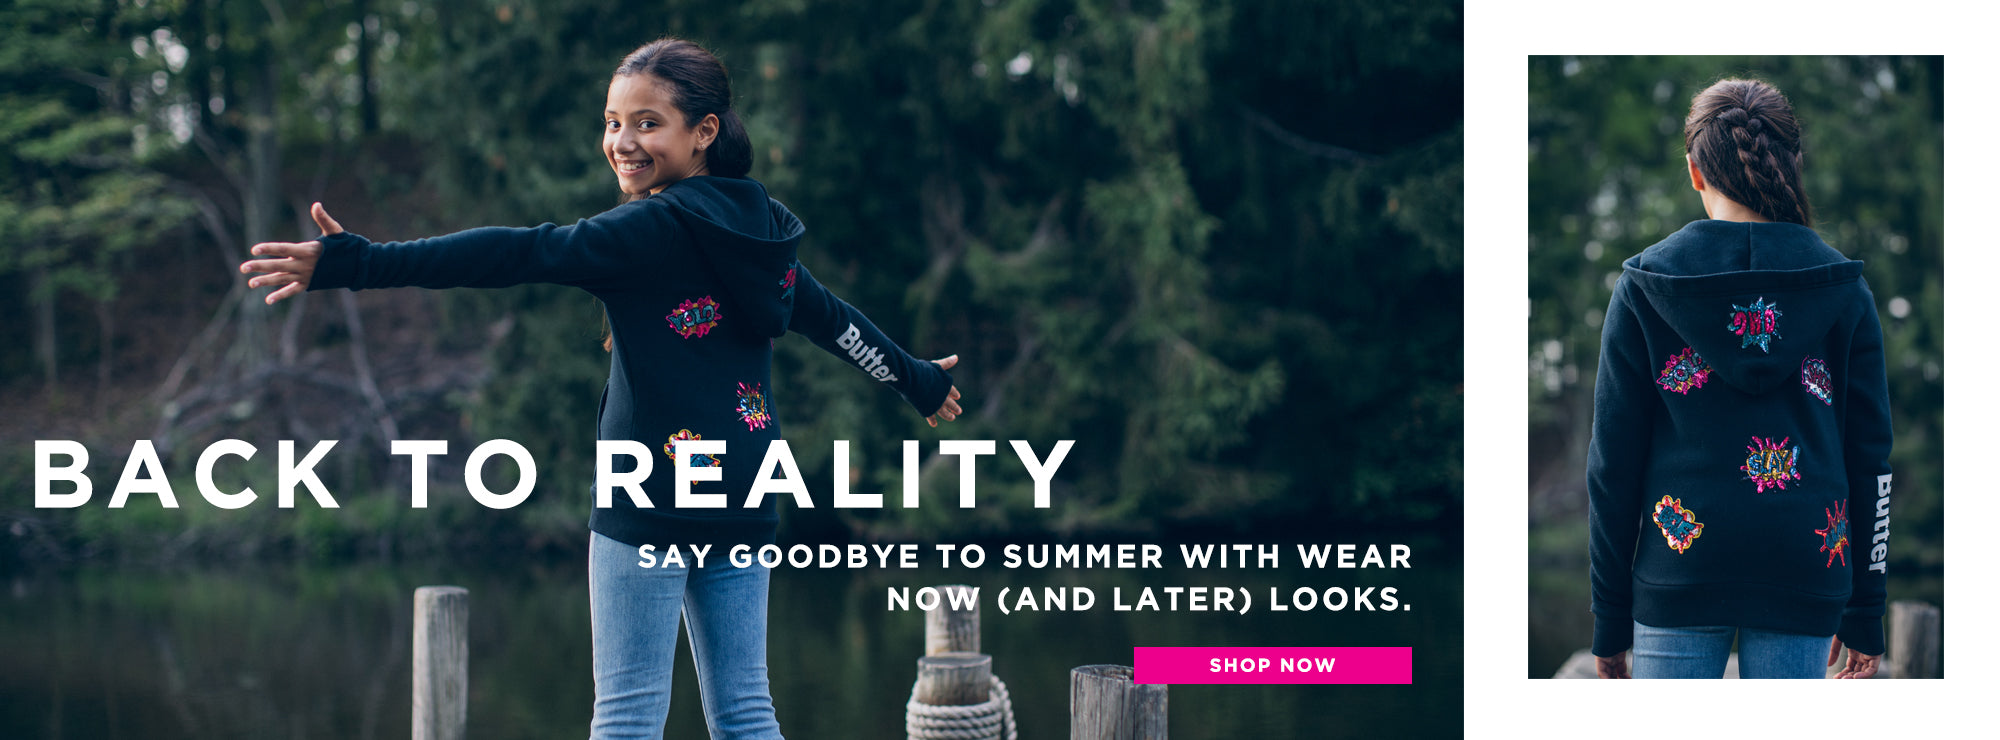 Back to reality. Say goodbye to summer with wear now (and later) looks. Shop now.